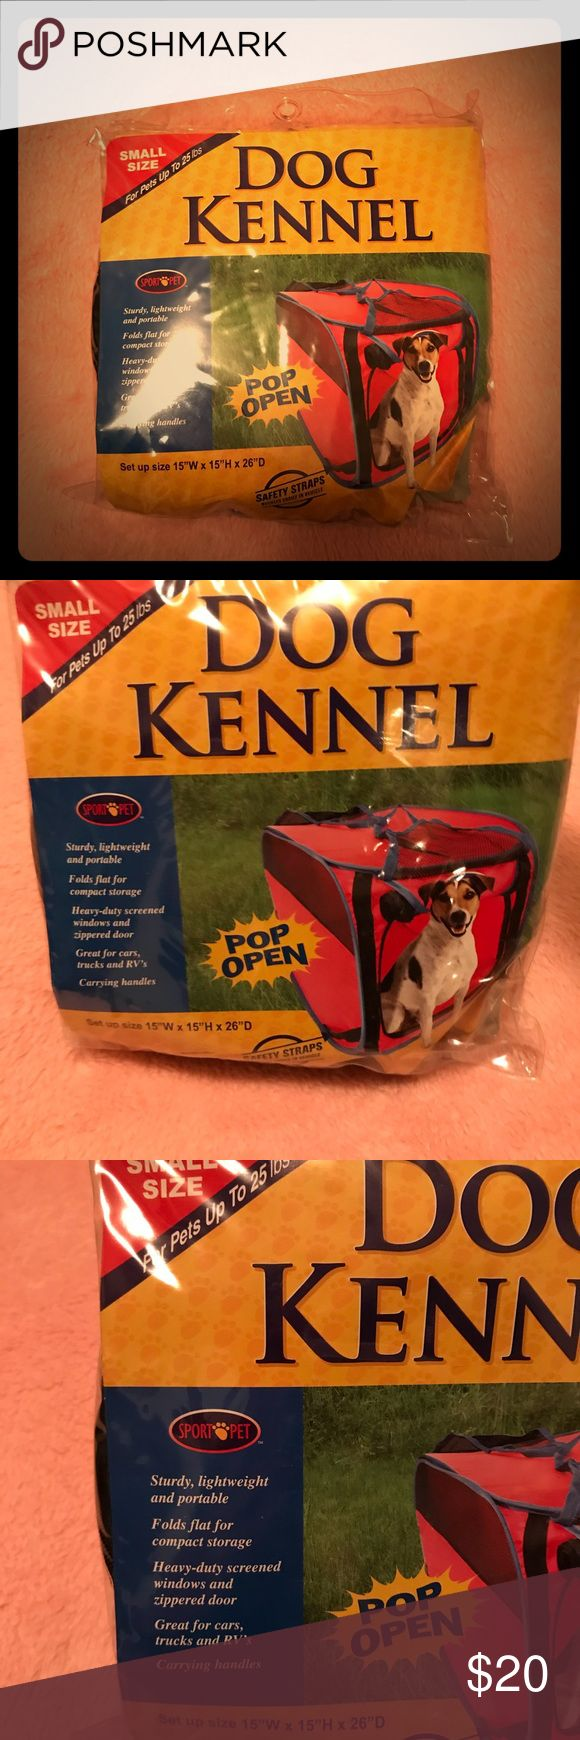 BRAND NEW SPORT PET RED POP UP DOG KENNEL Brand new   Sturdy lightweight and Portable.   Fold flat for compact storage.   Heavy-Duty screened windows and zippered door.   Great for cars, trucks, and RVS  Carrying handles Other